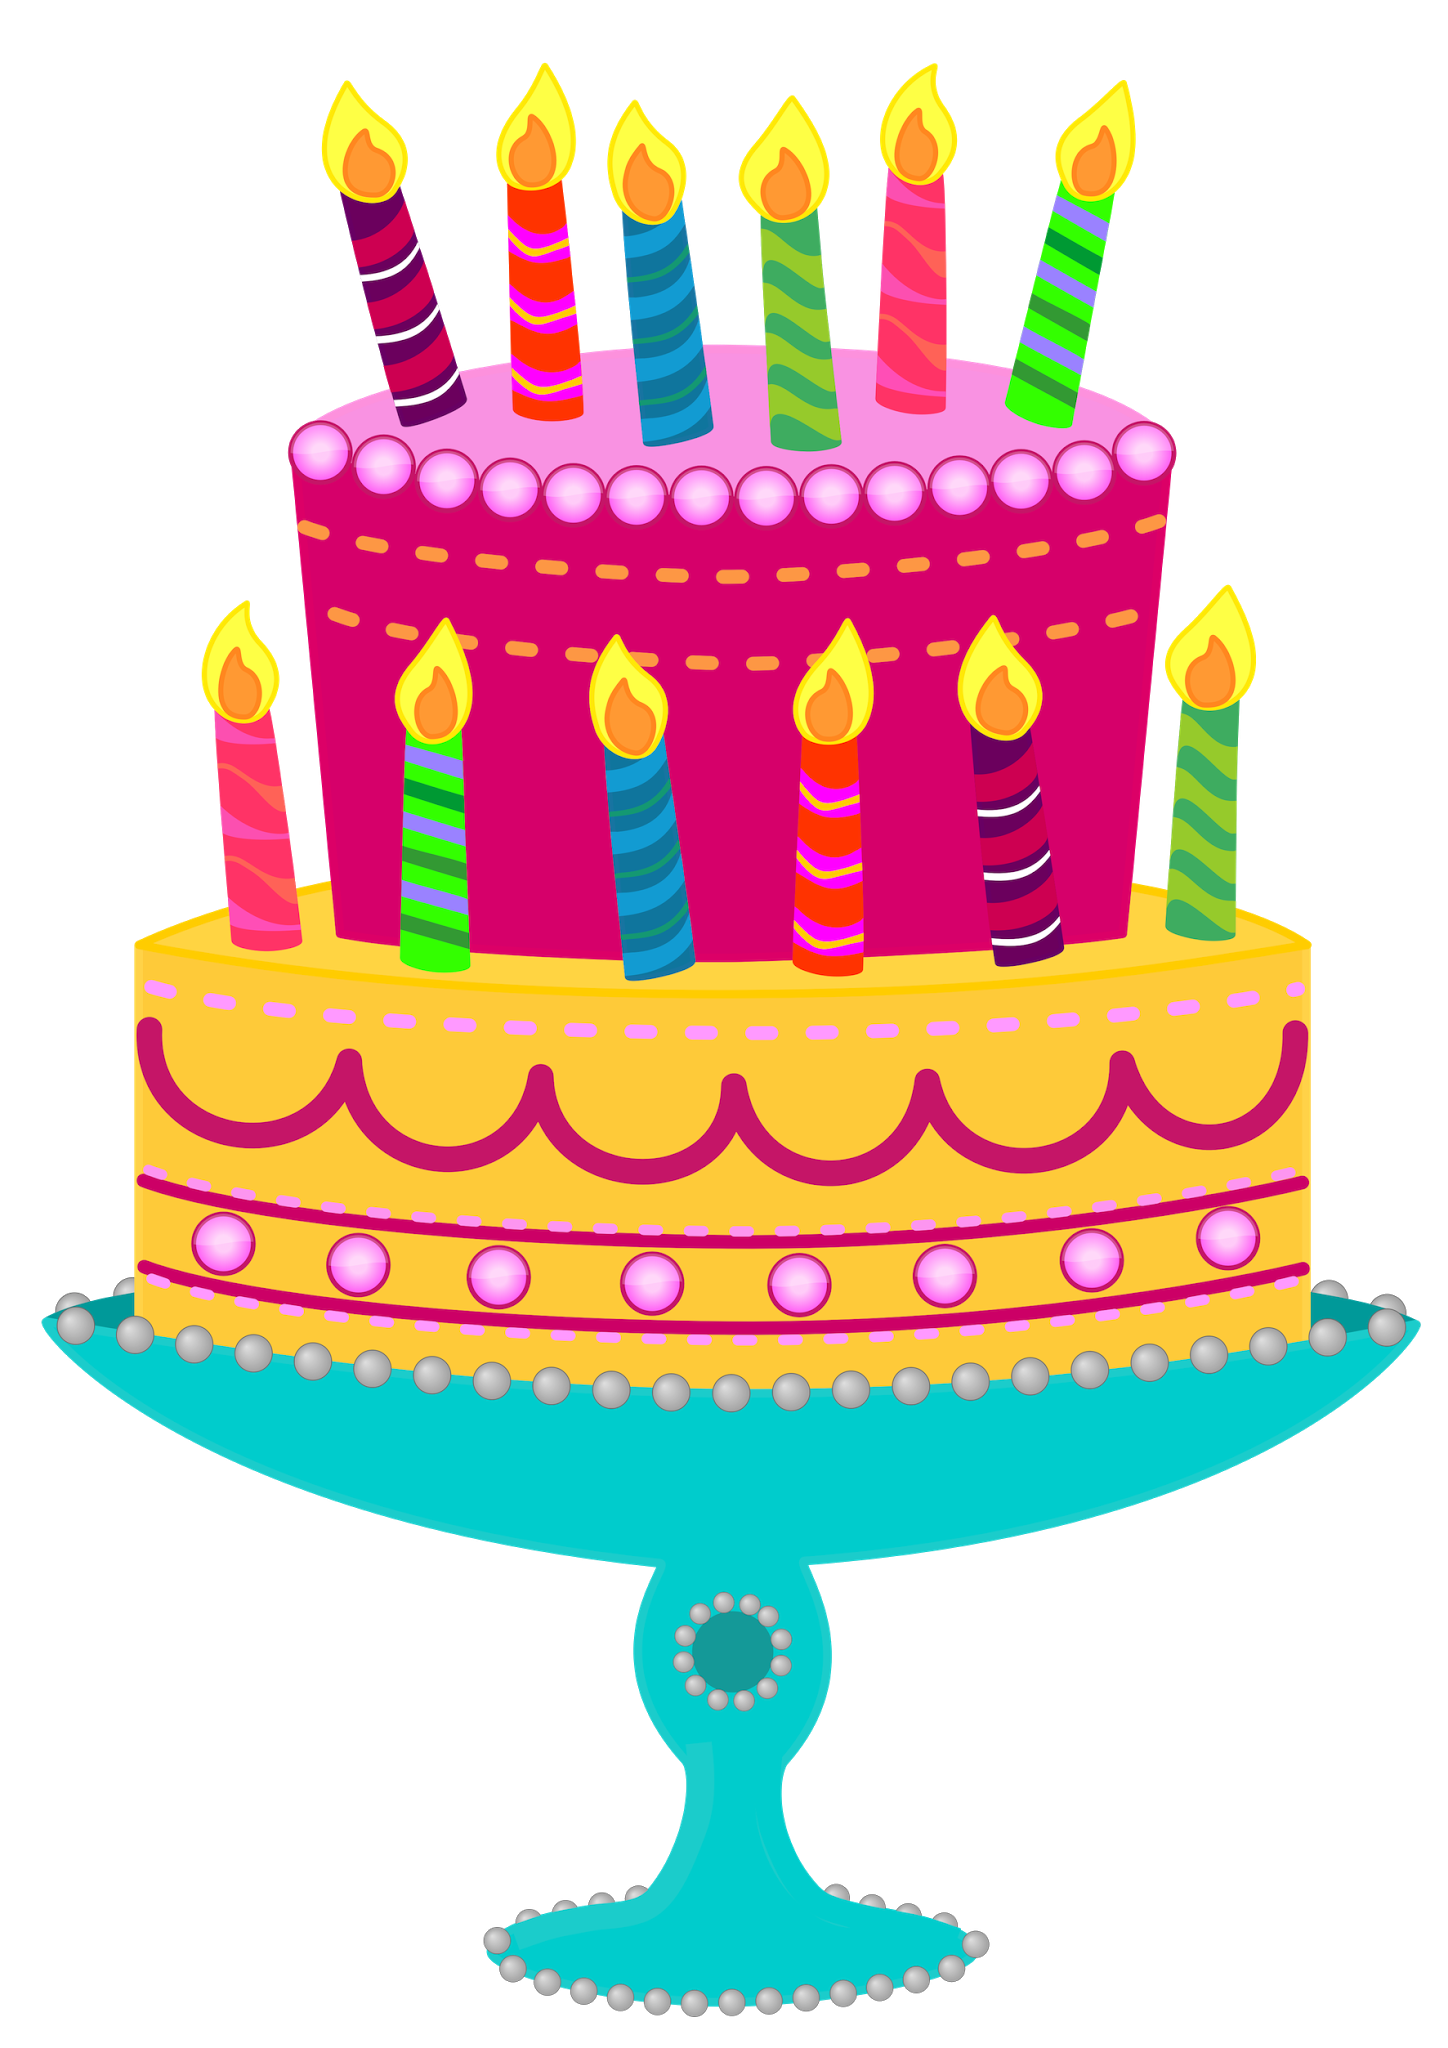 Free animated birthday clipart picture freeuse download Free Cake Images - Cliparts.co | Paper Images | Pinterest | Cake ... picture freeuse download